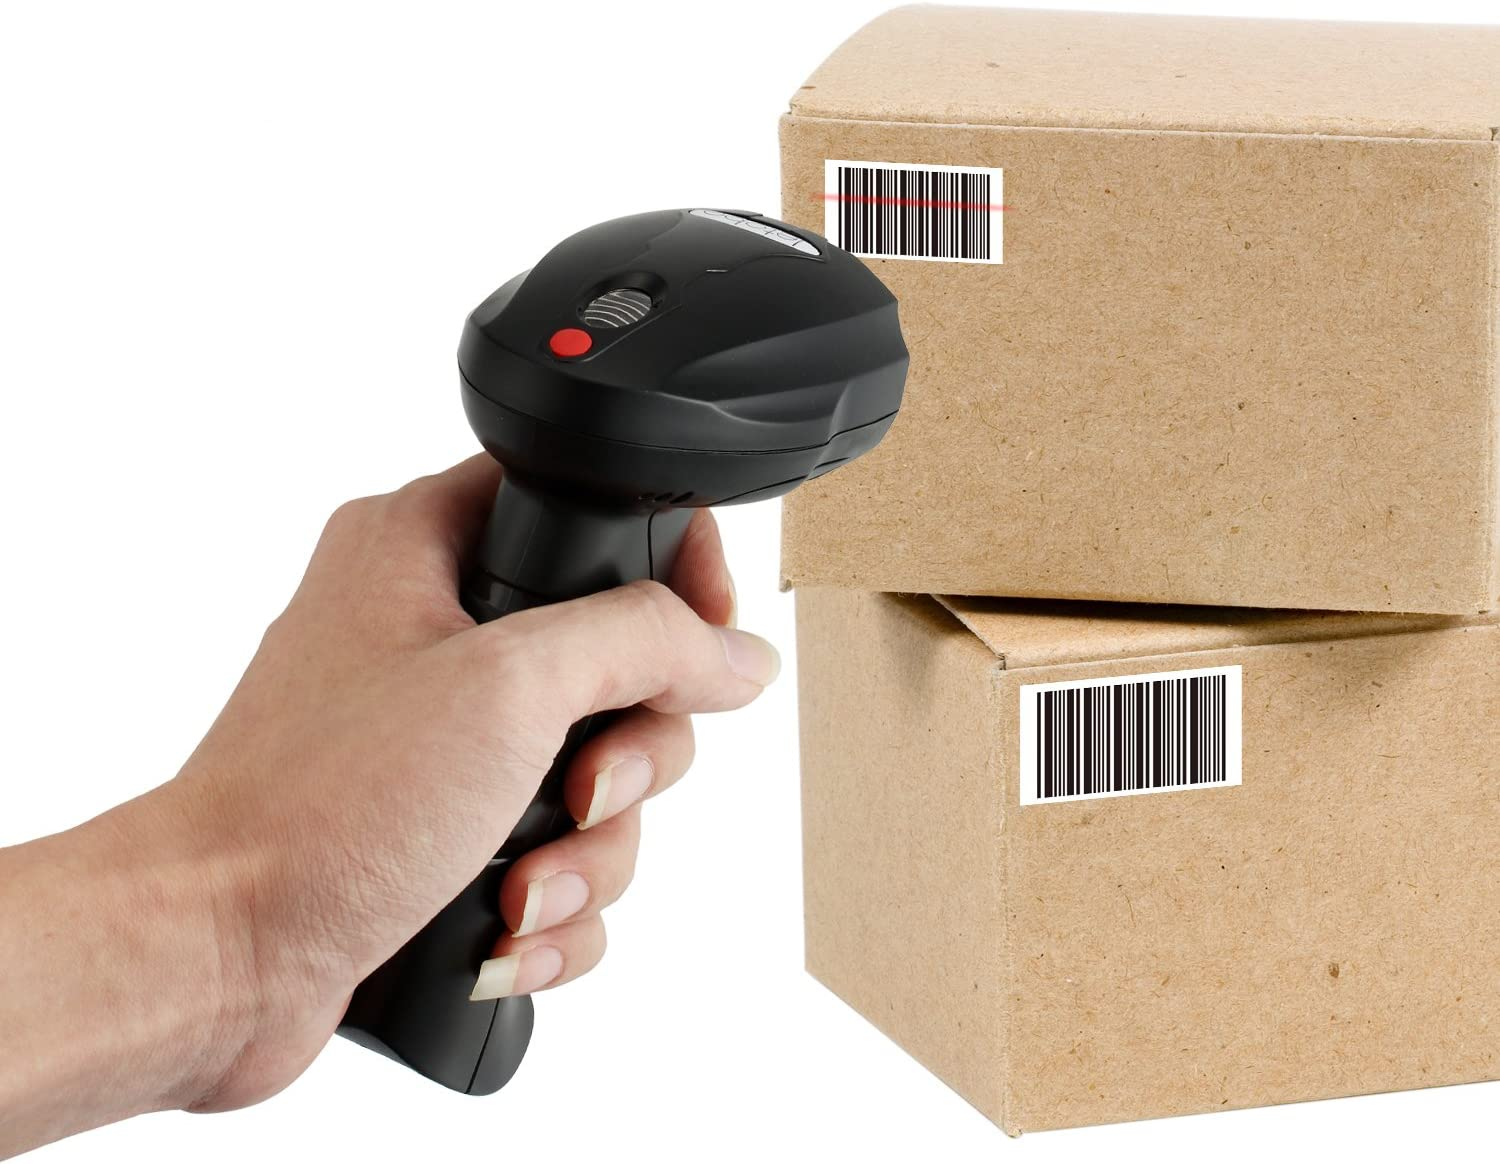 letobe Wireless Barcode Scanner Tags Reader USB Memory Adapter Inventory System 3rd Party Software